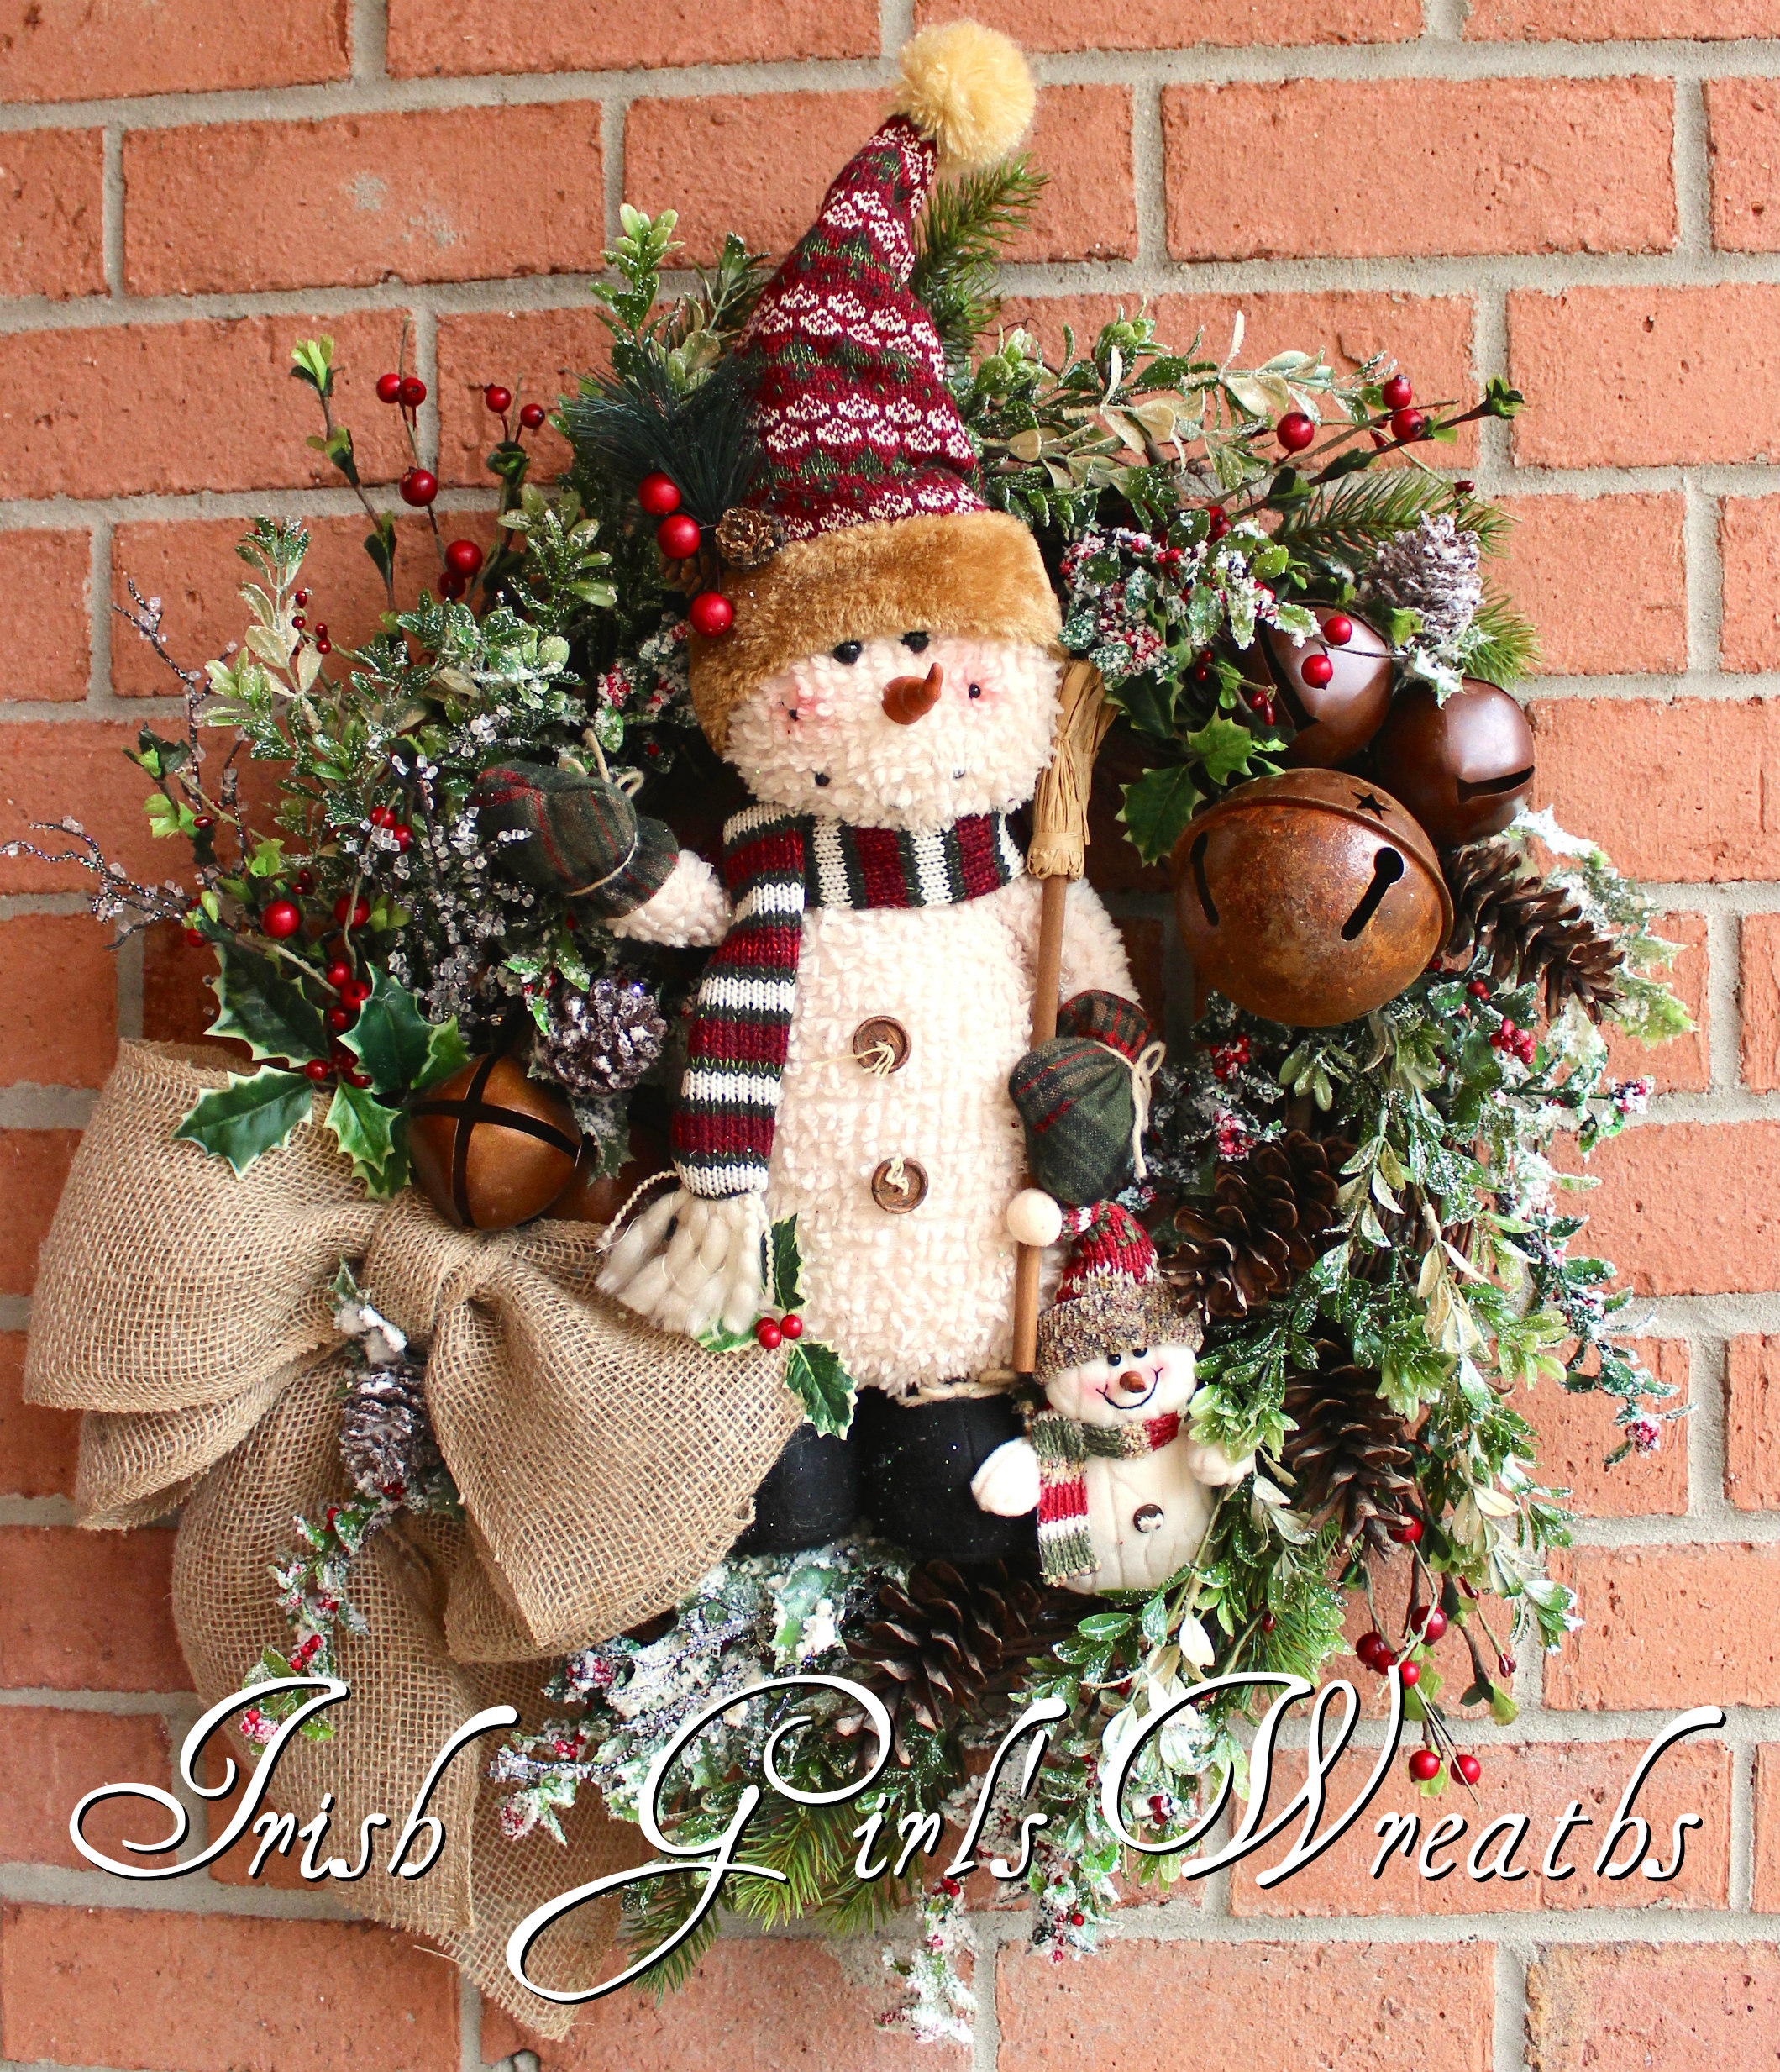 Rustic Adorable Snowman Family Wreath, Primitive Winter Sleigh Bells